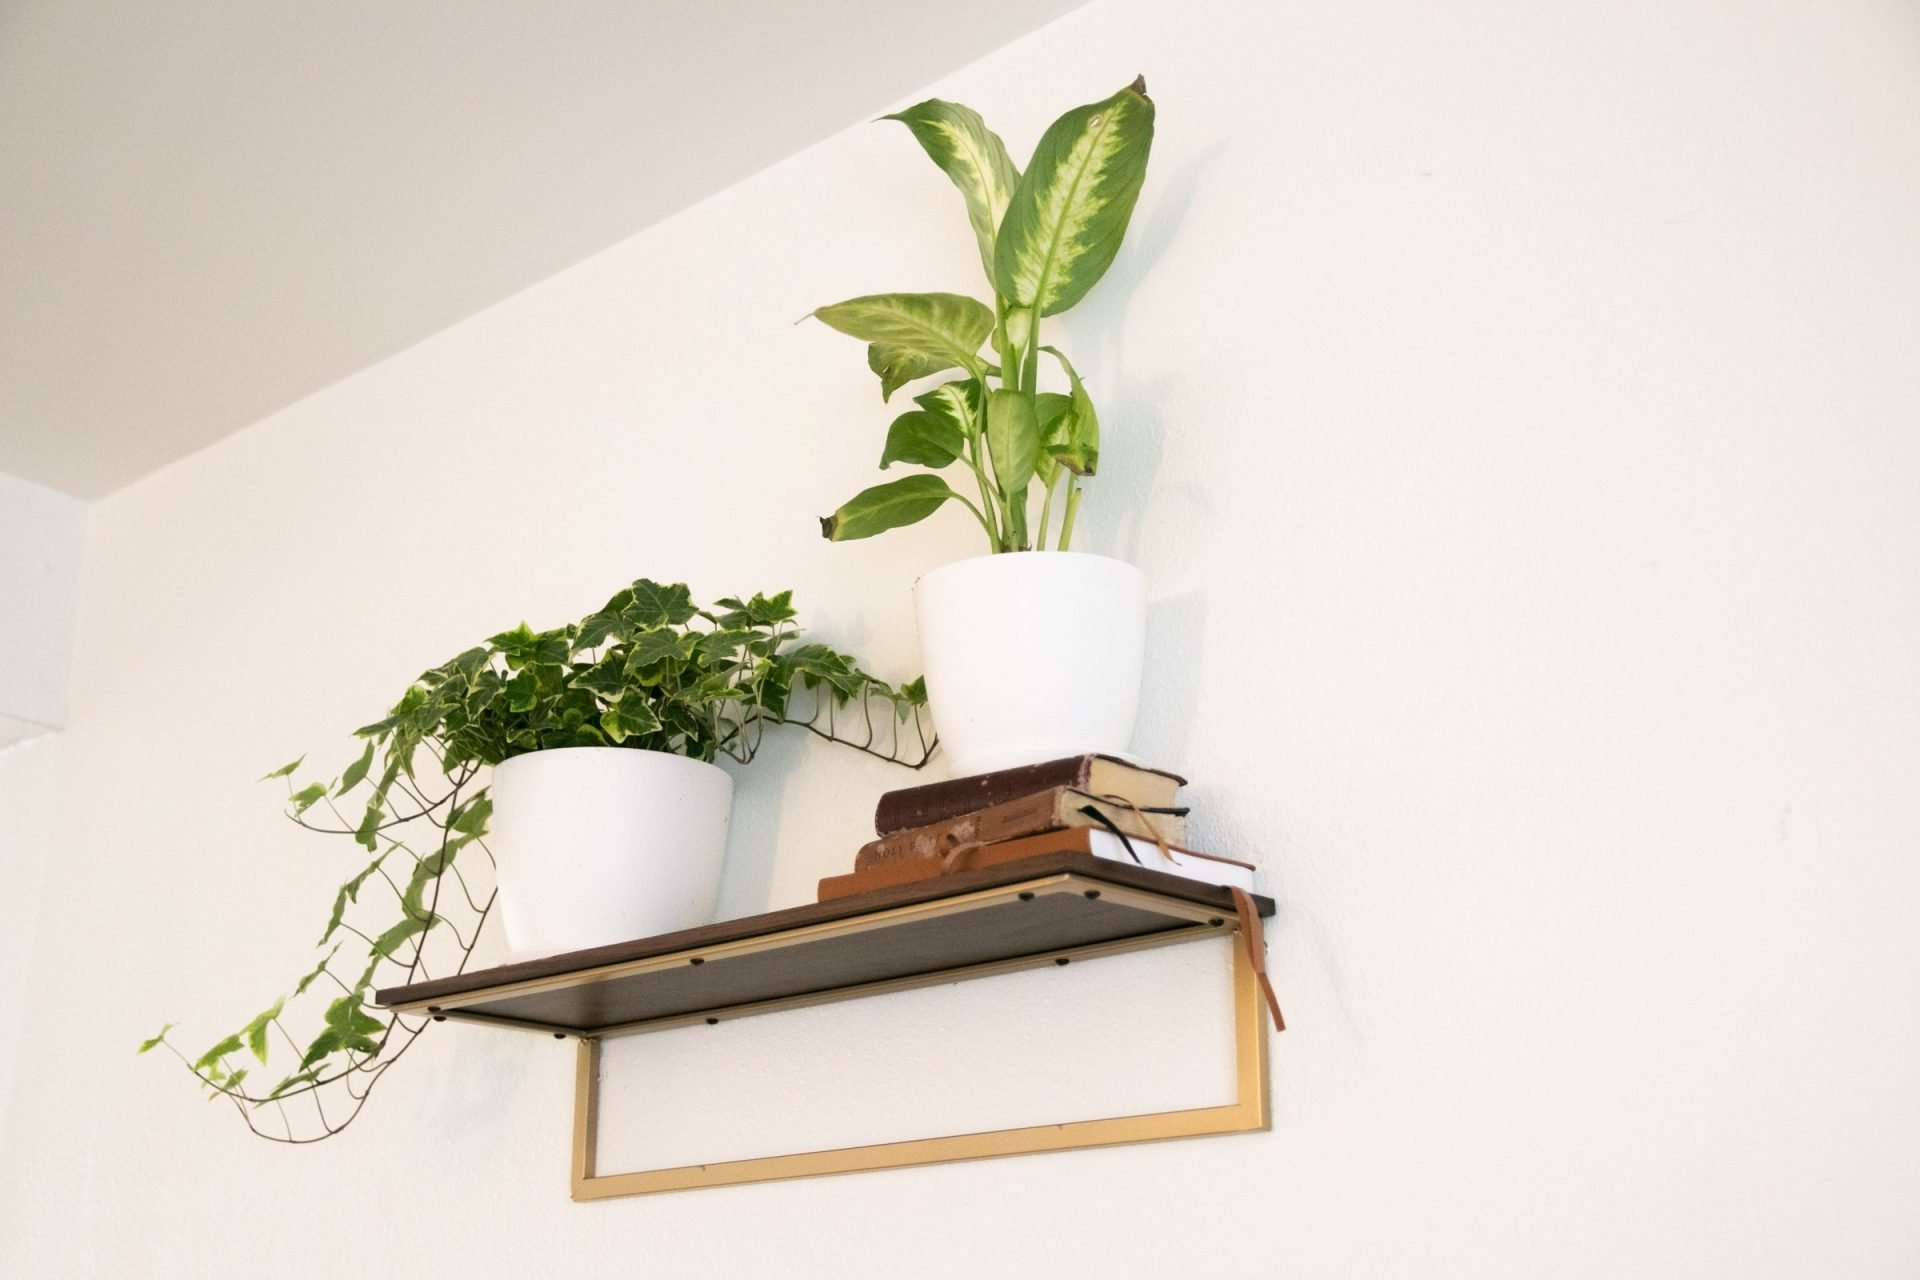 Potted Plants And Books On Wall Shelf